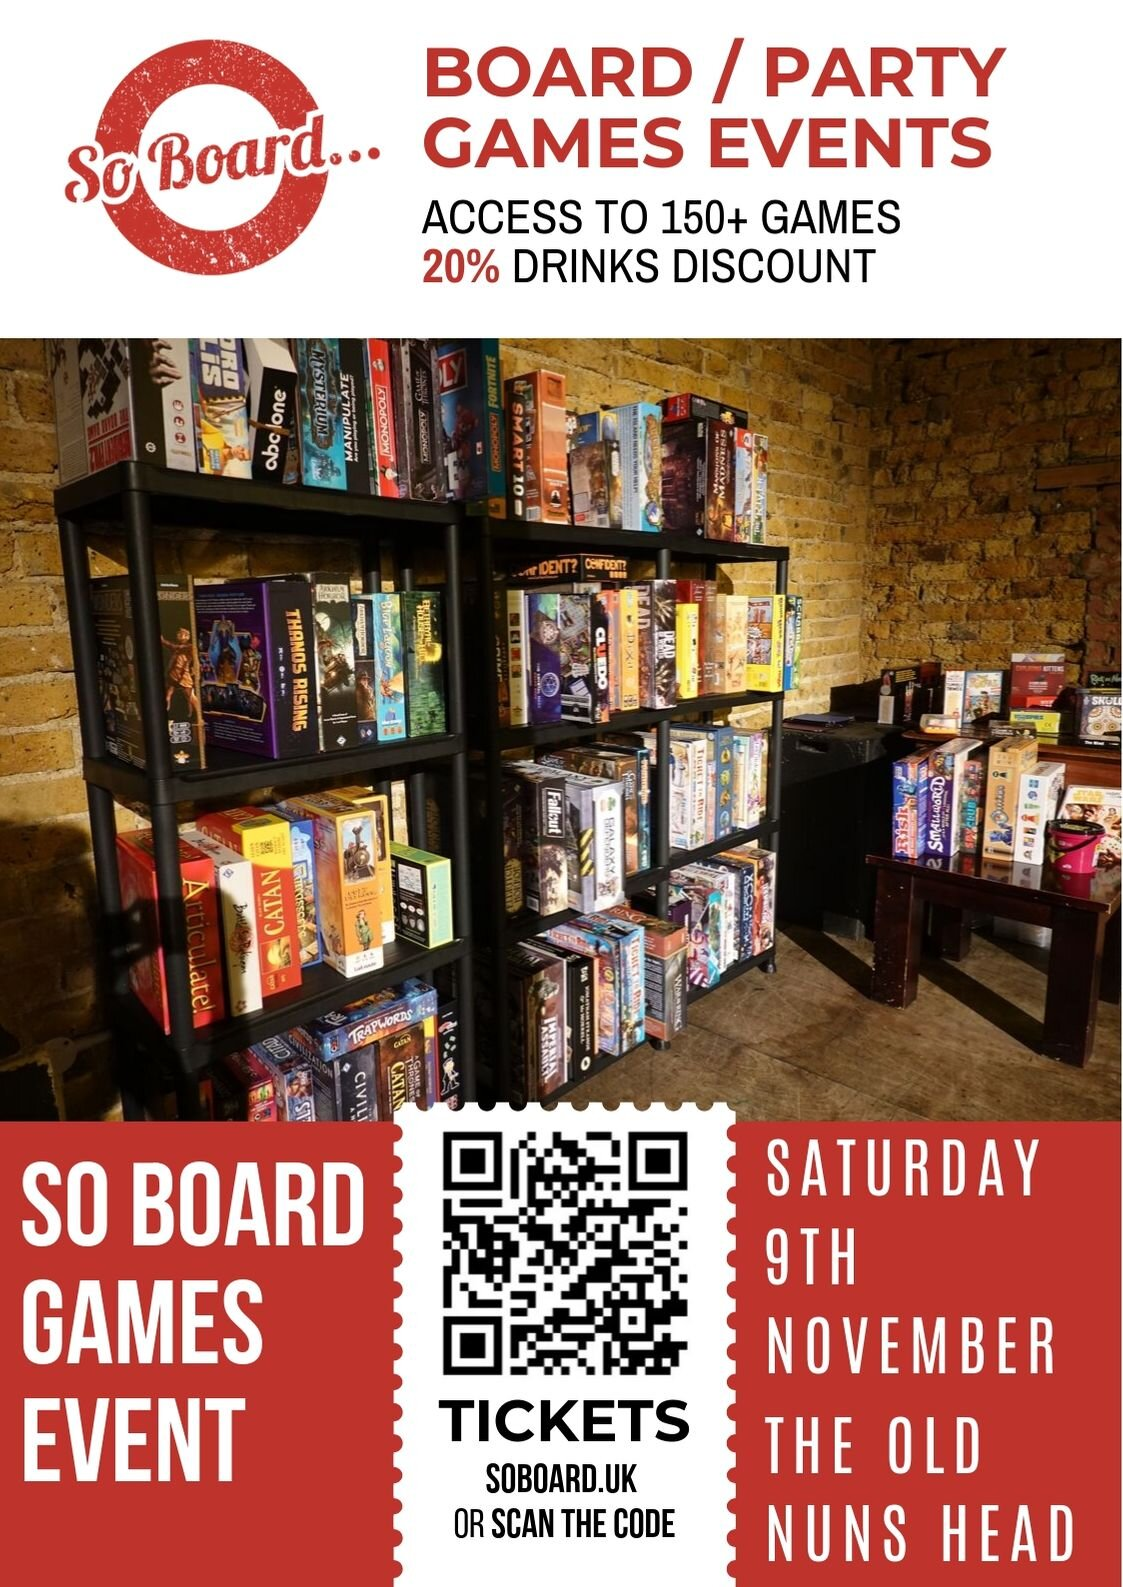 SOBOARD Games eventS (1).jpg